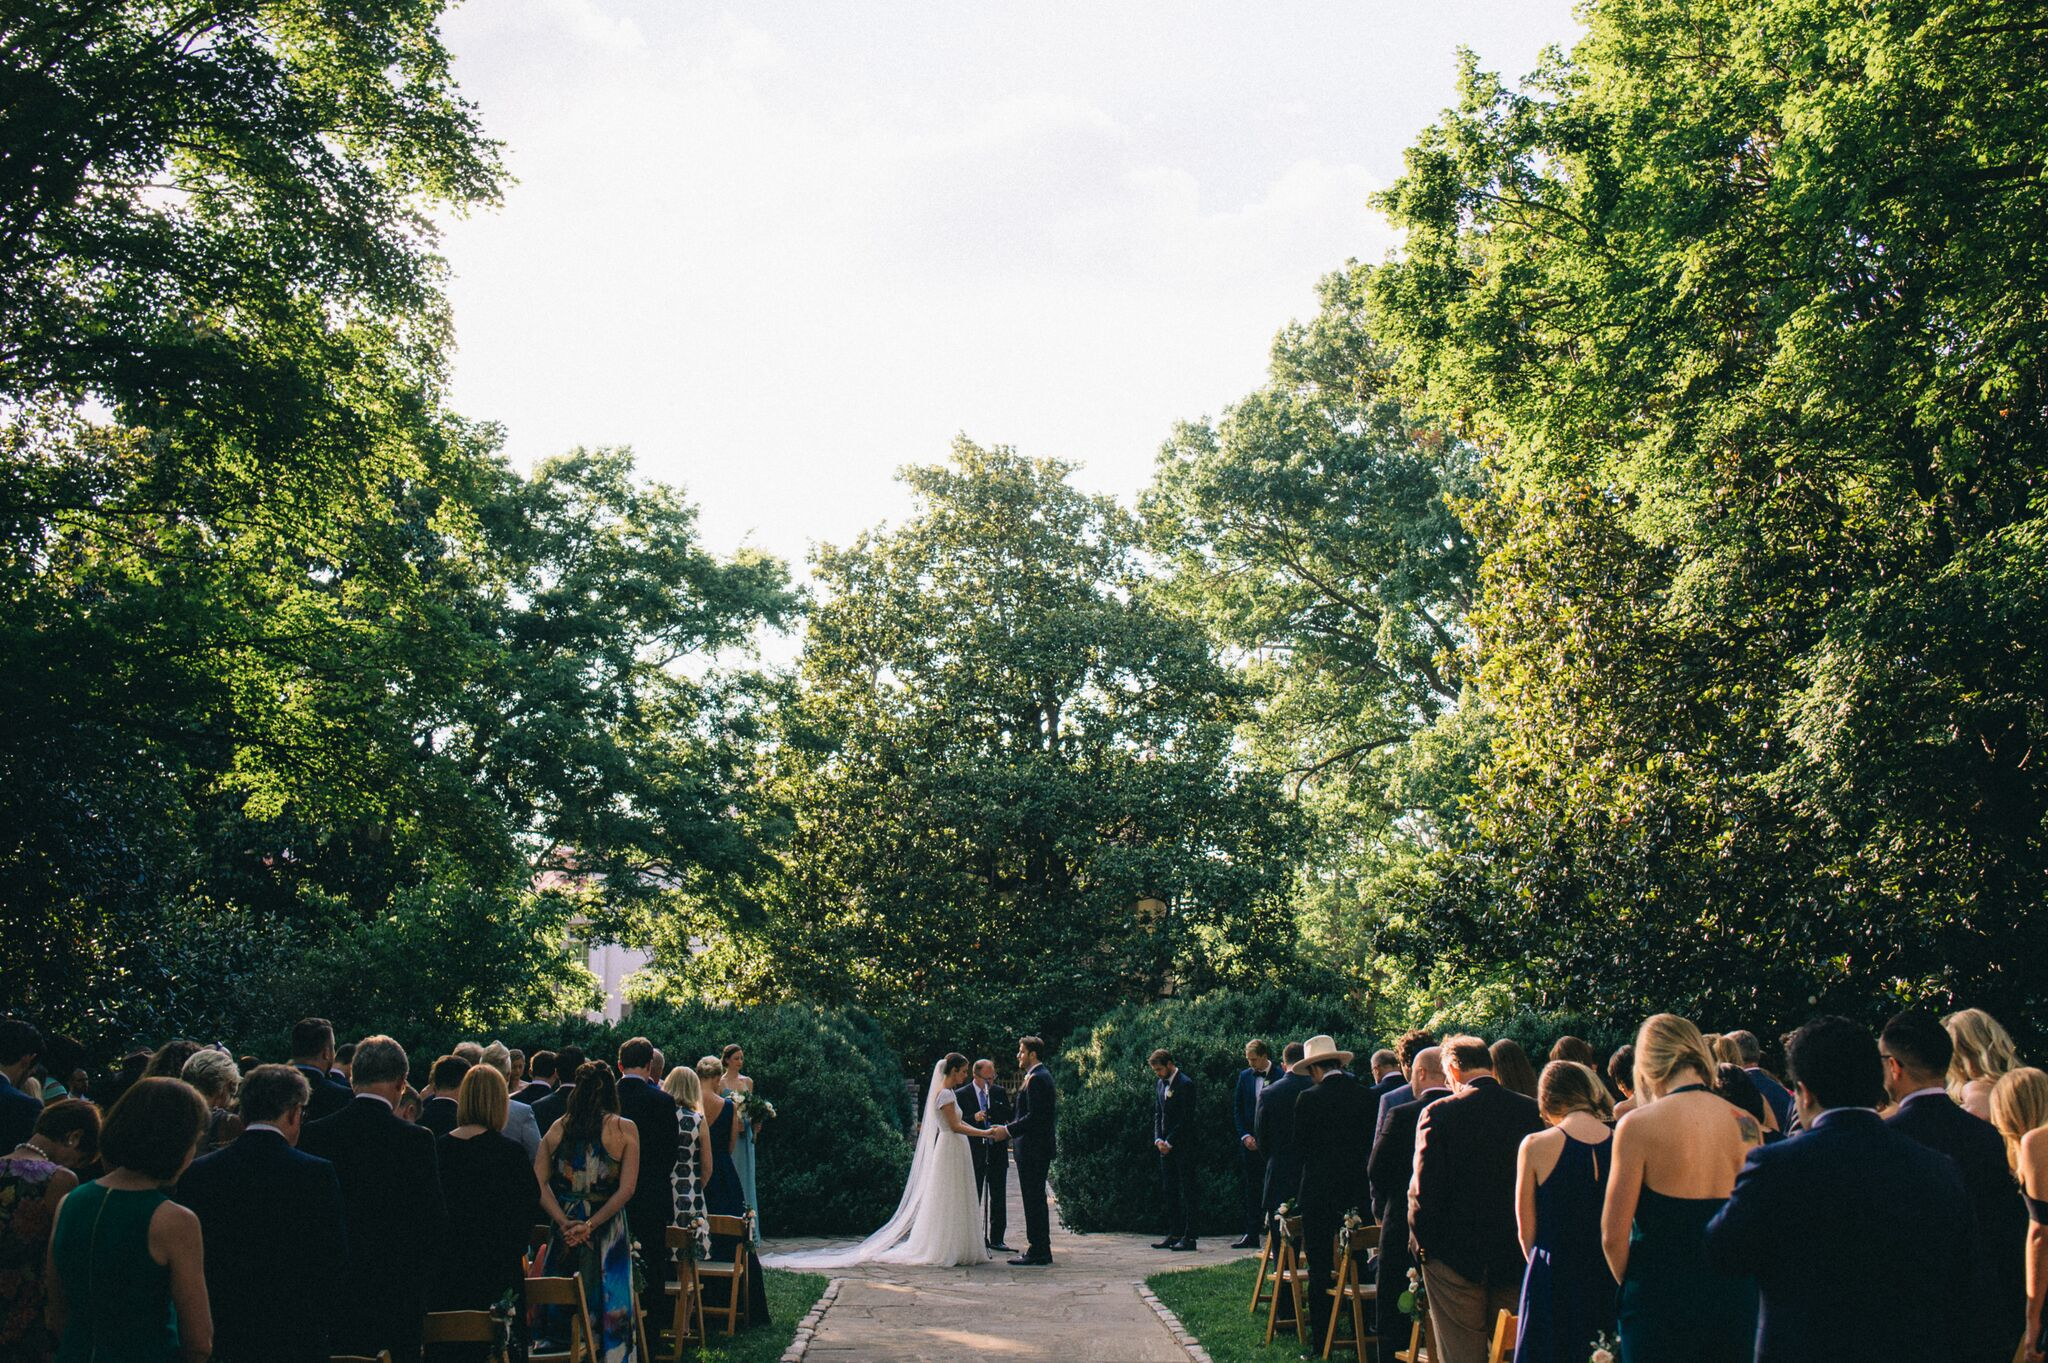 Blake and Jordan's Wedding at Belle Meade Plantation